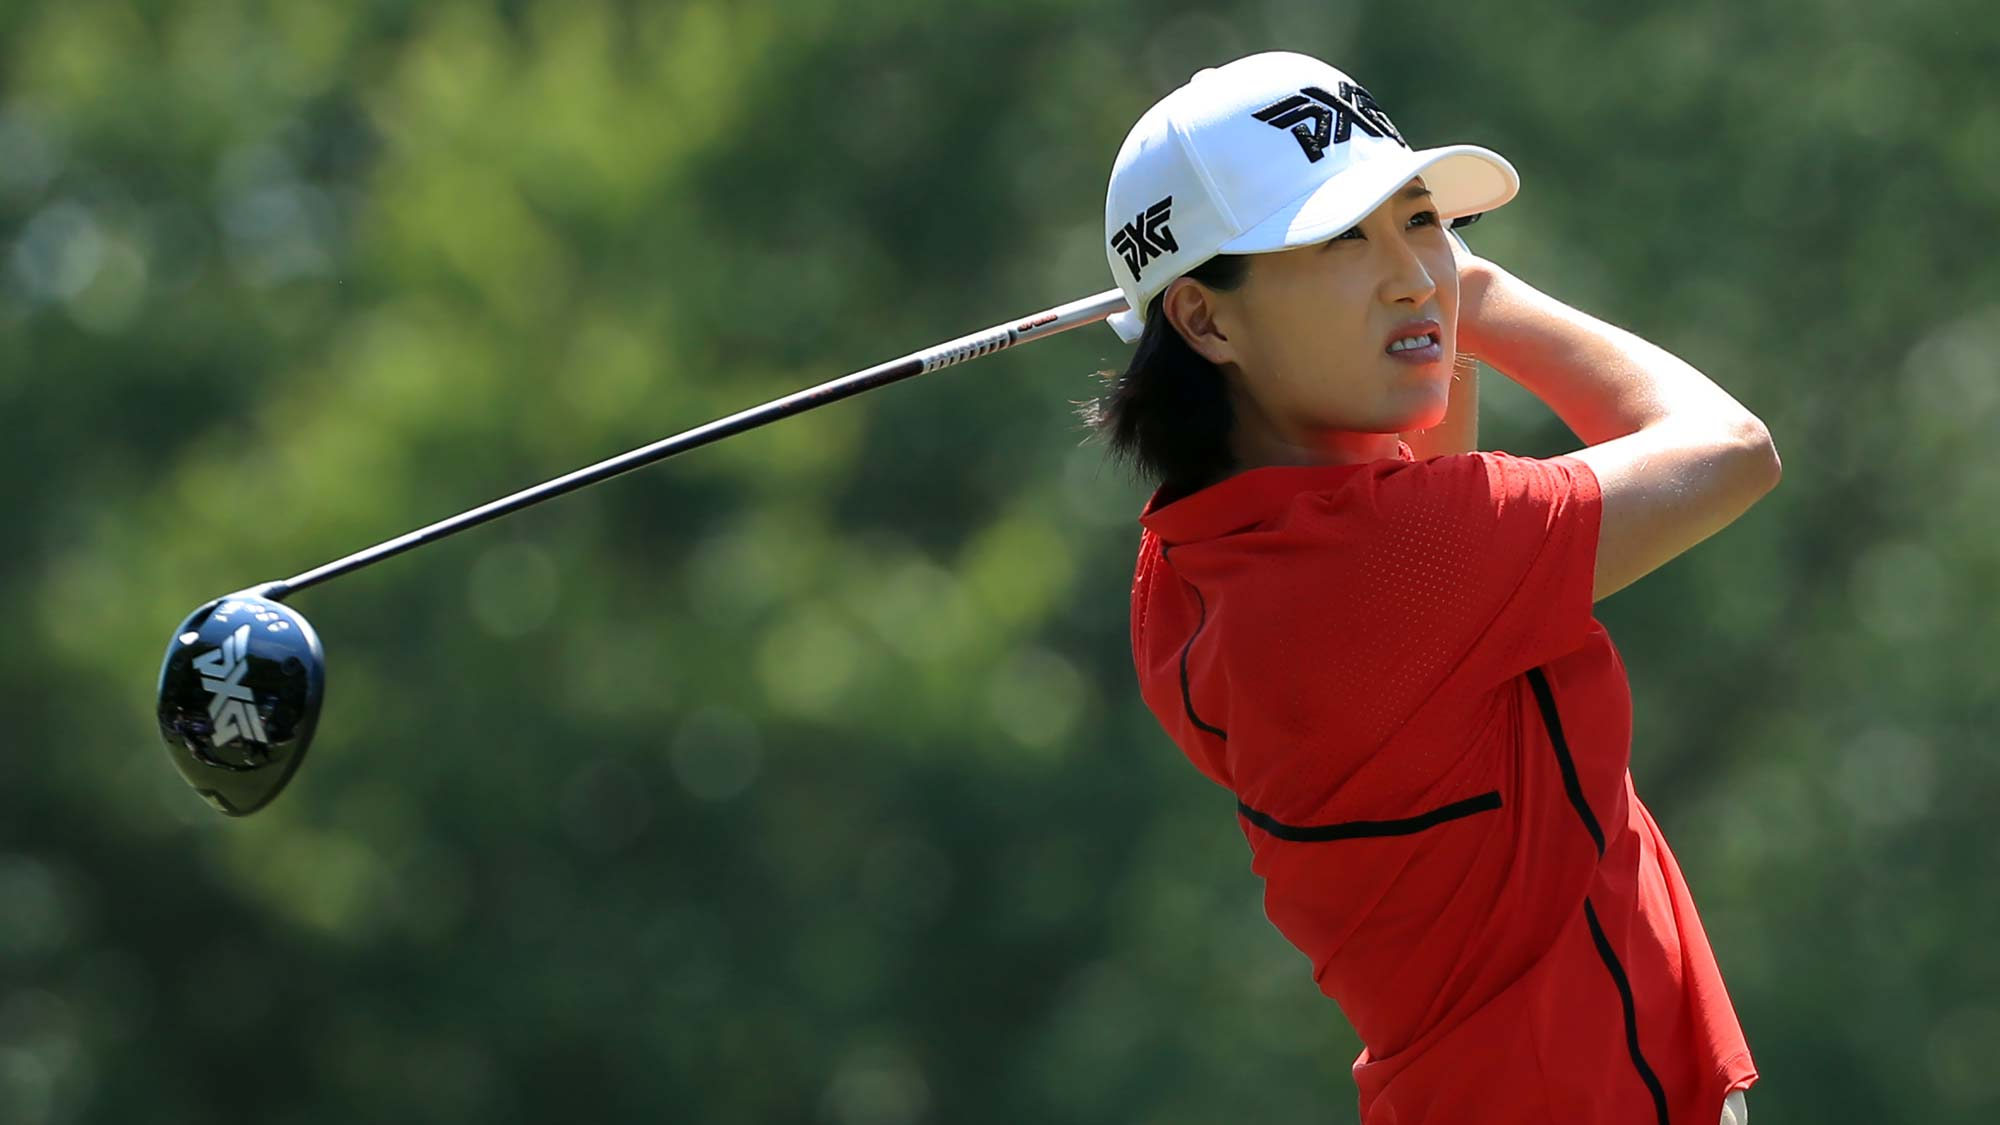 Jennifer Song hits her tee shot on the third hole during the final round of the Pure Silk Championship